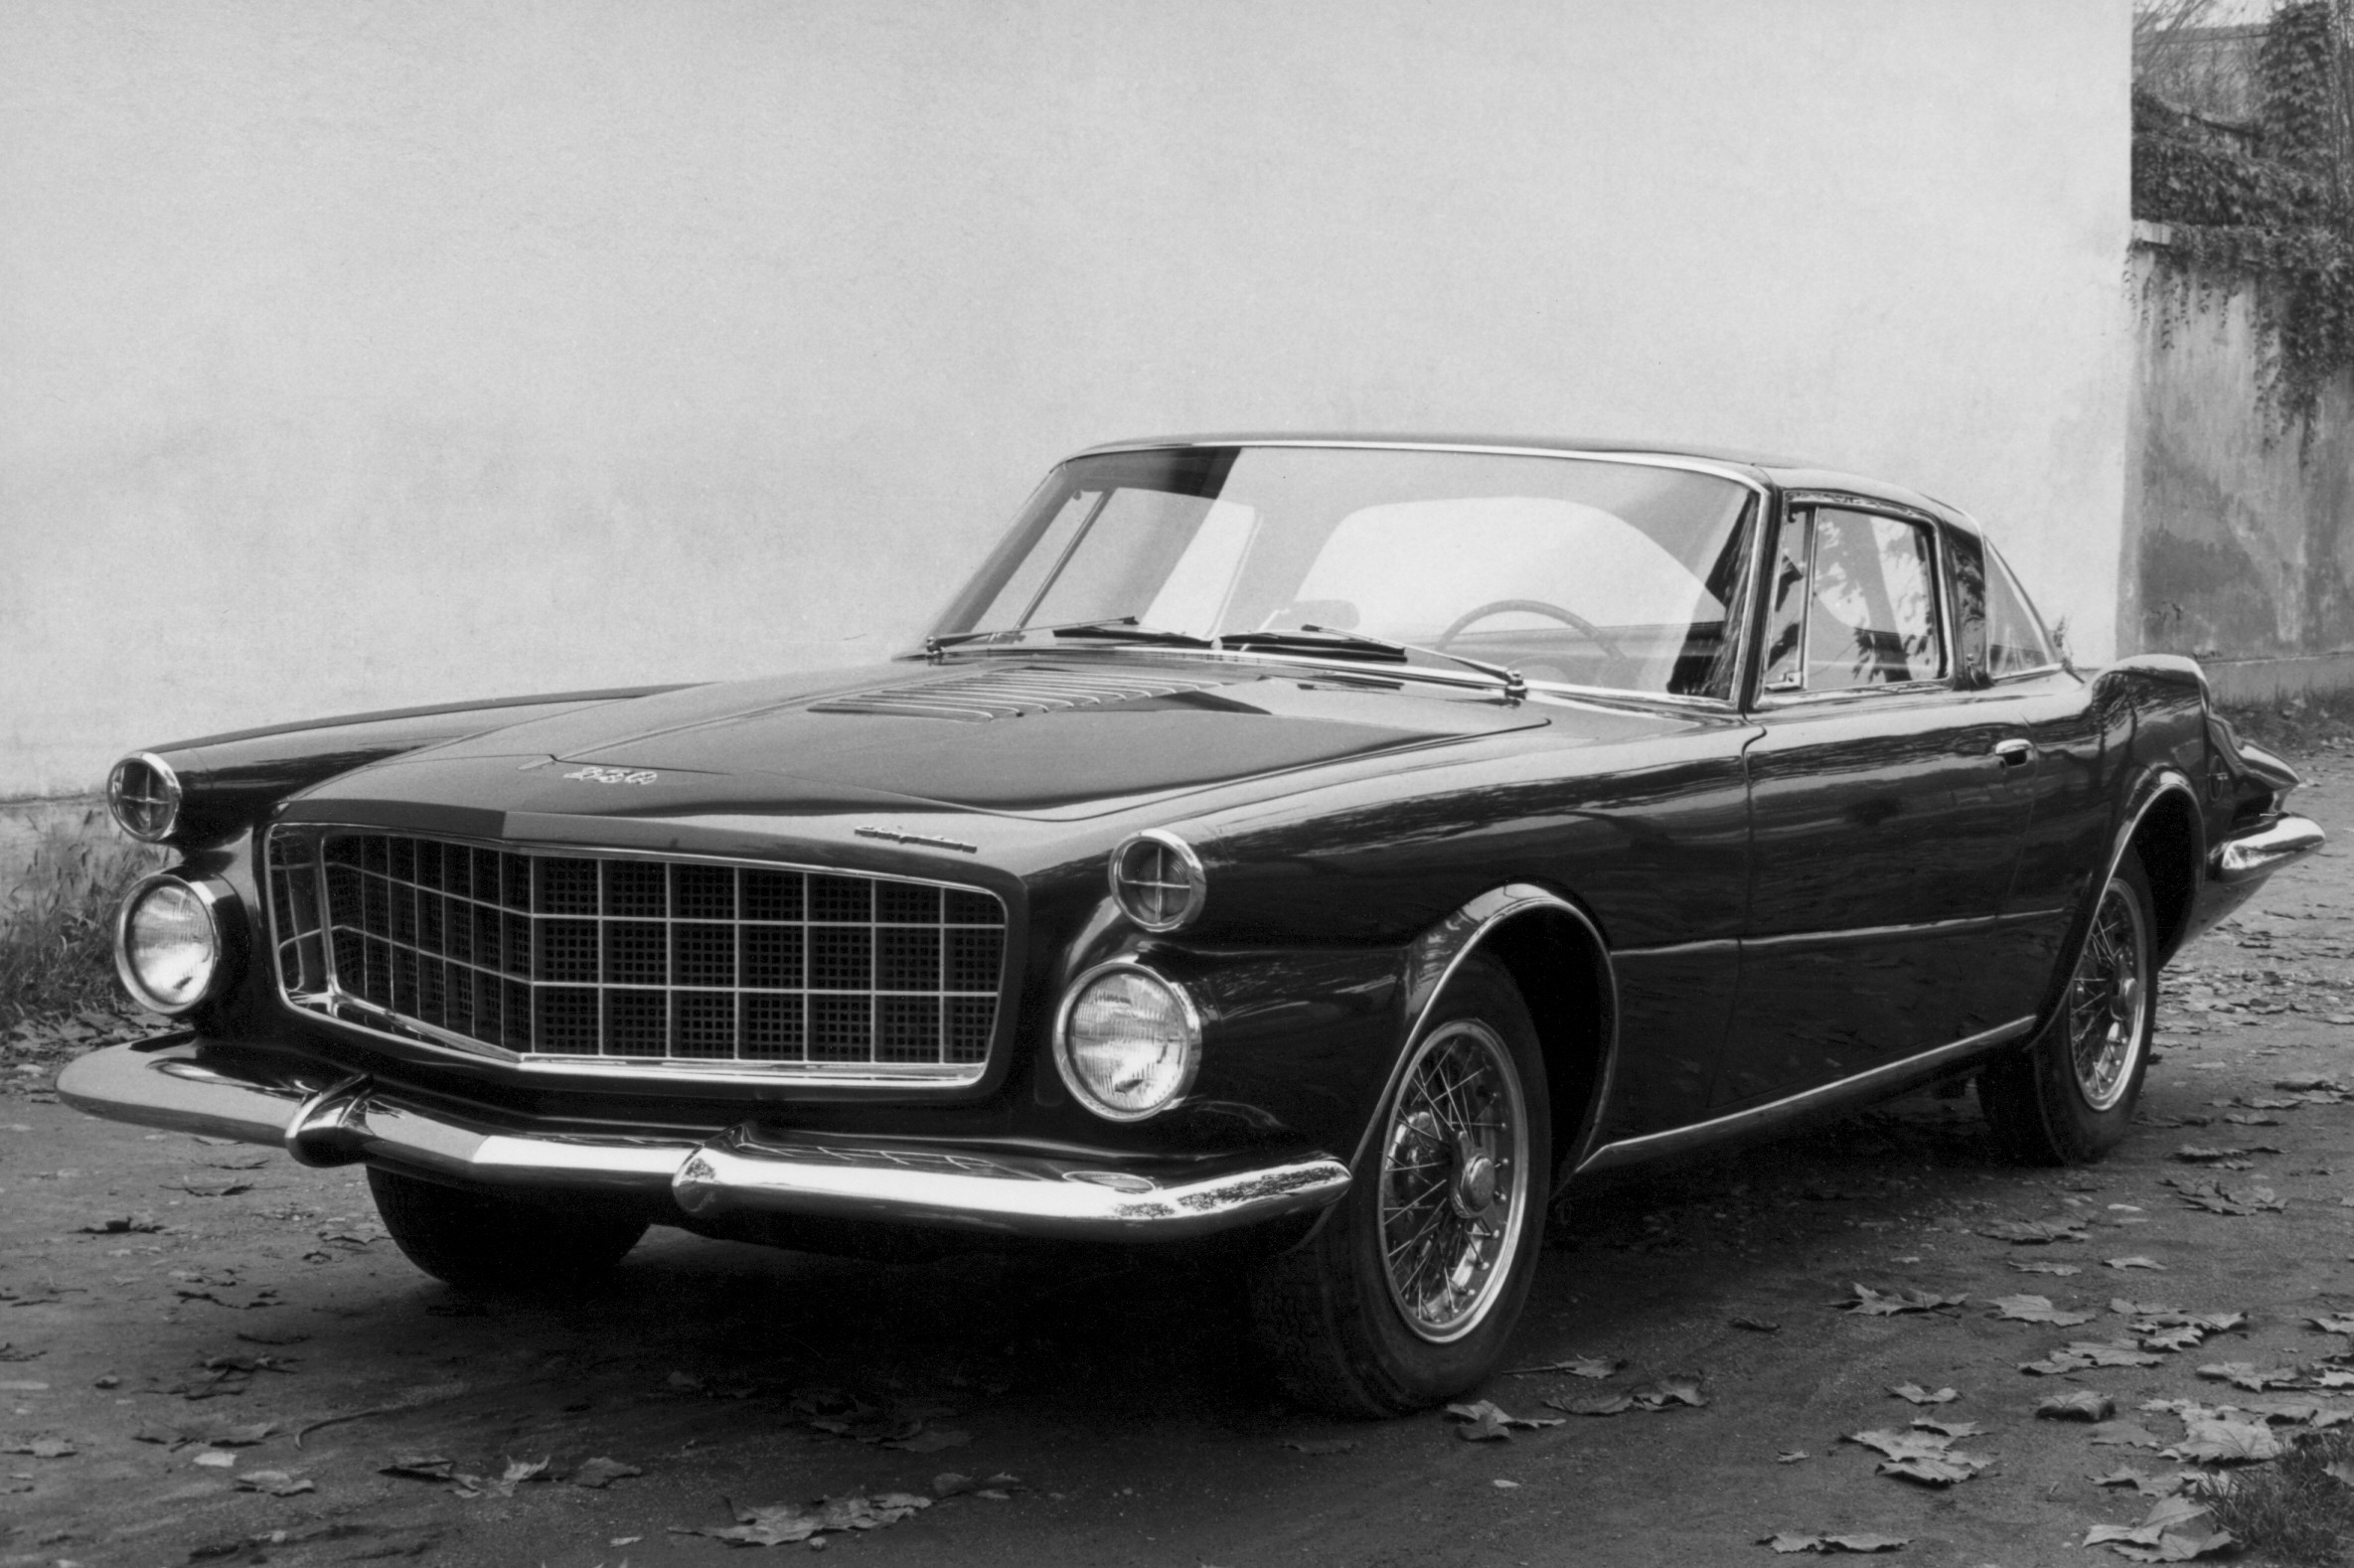 1960-Ghia-Chrysler-Plymouth-Valiant-03